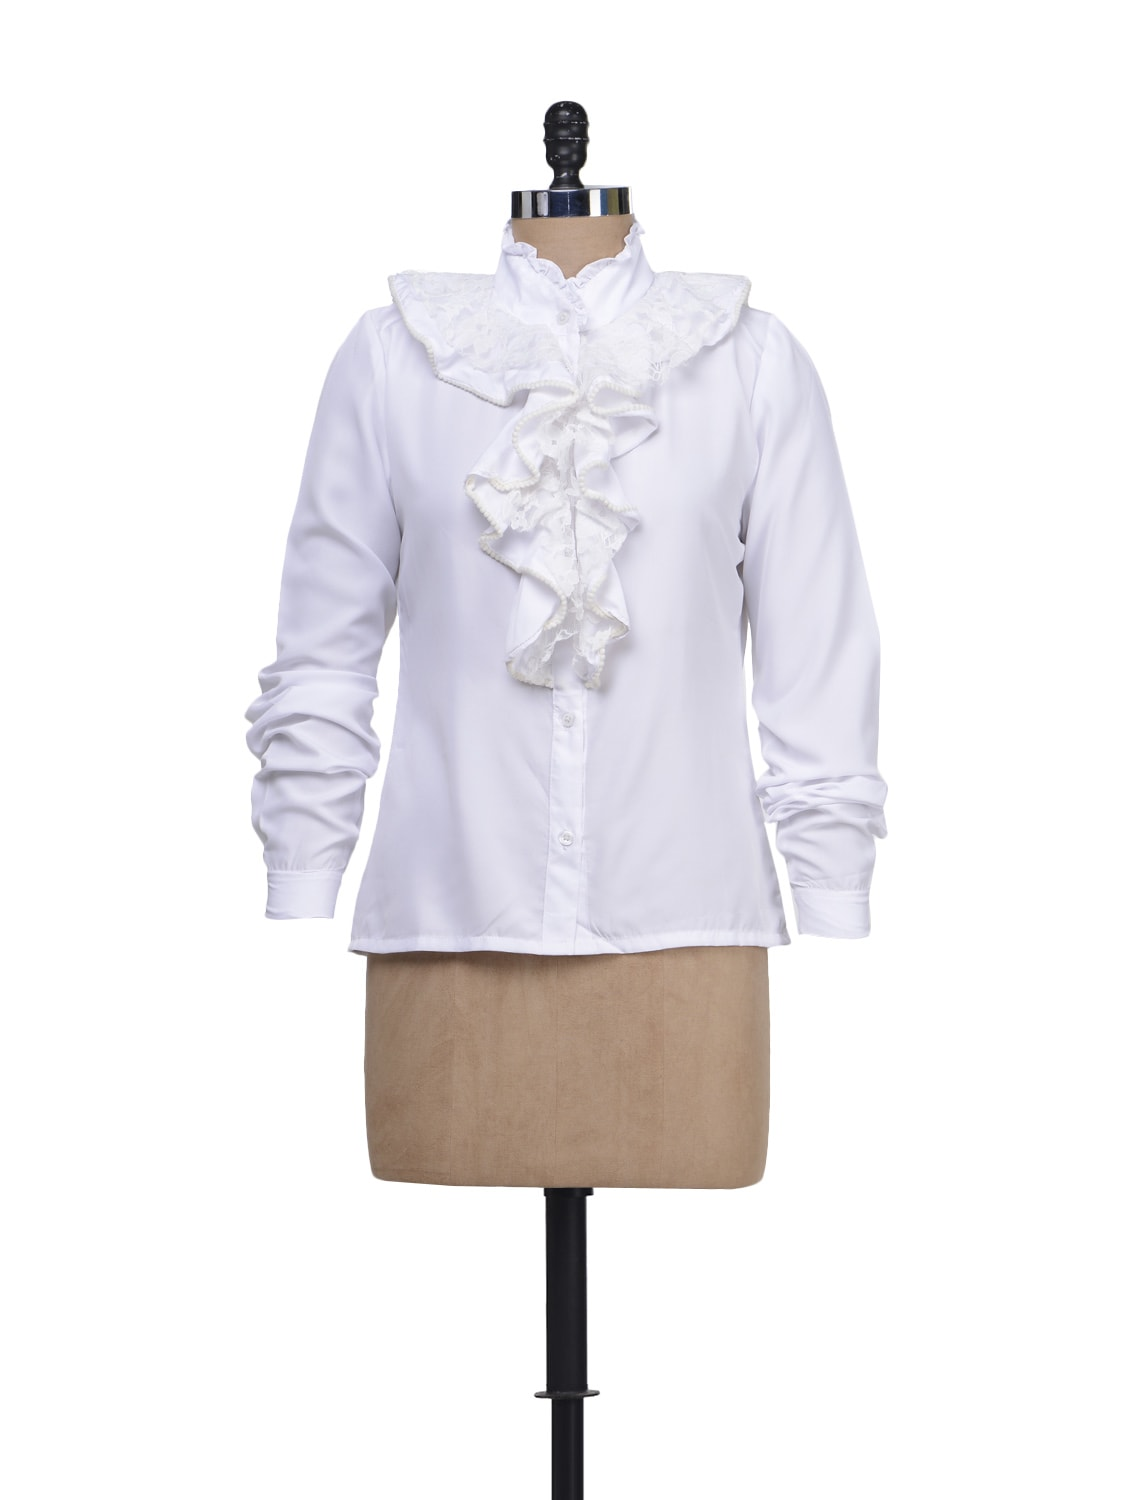 Solid White Shirt With Ruffled Neckline - Liebemode